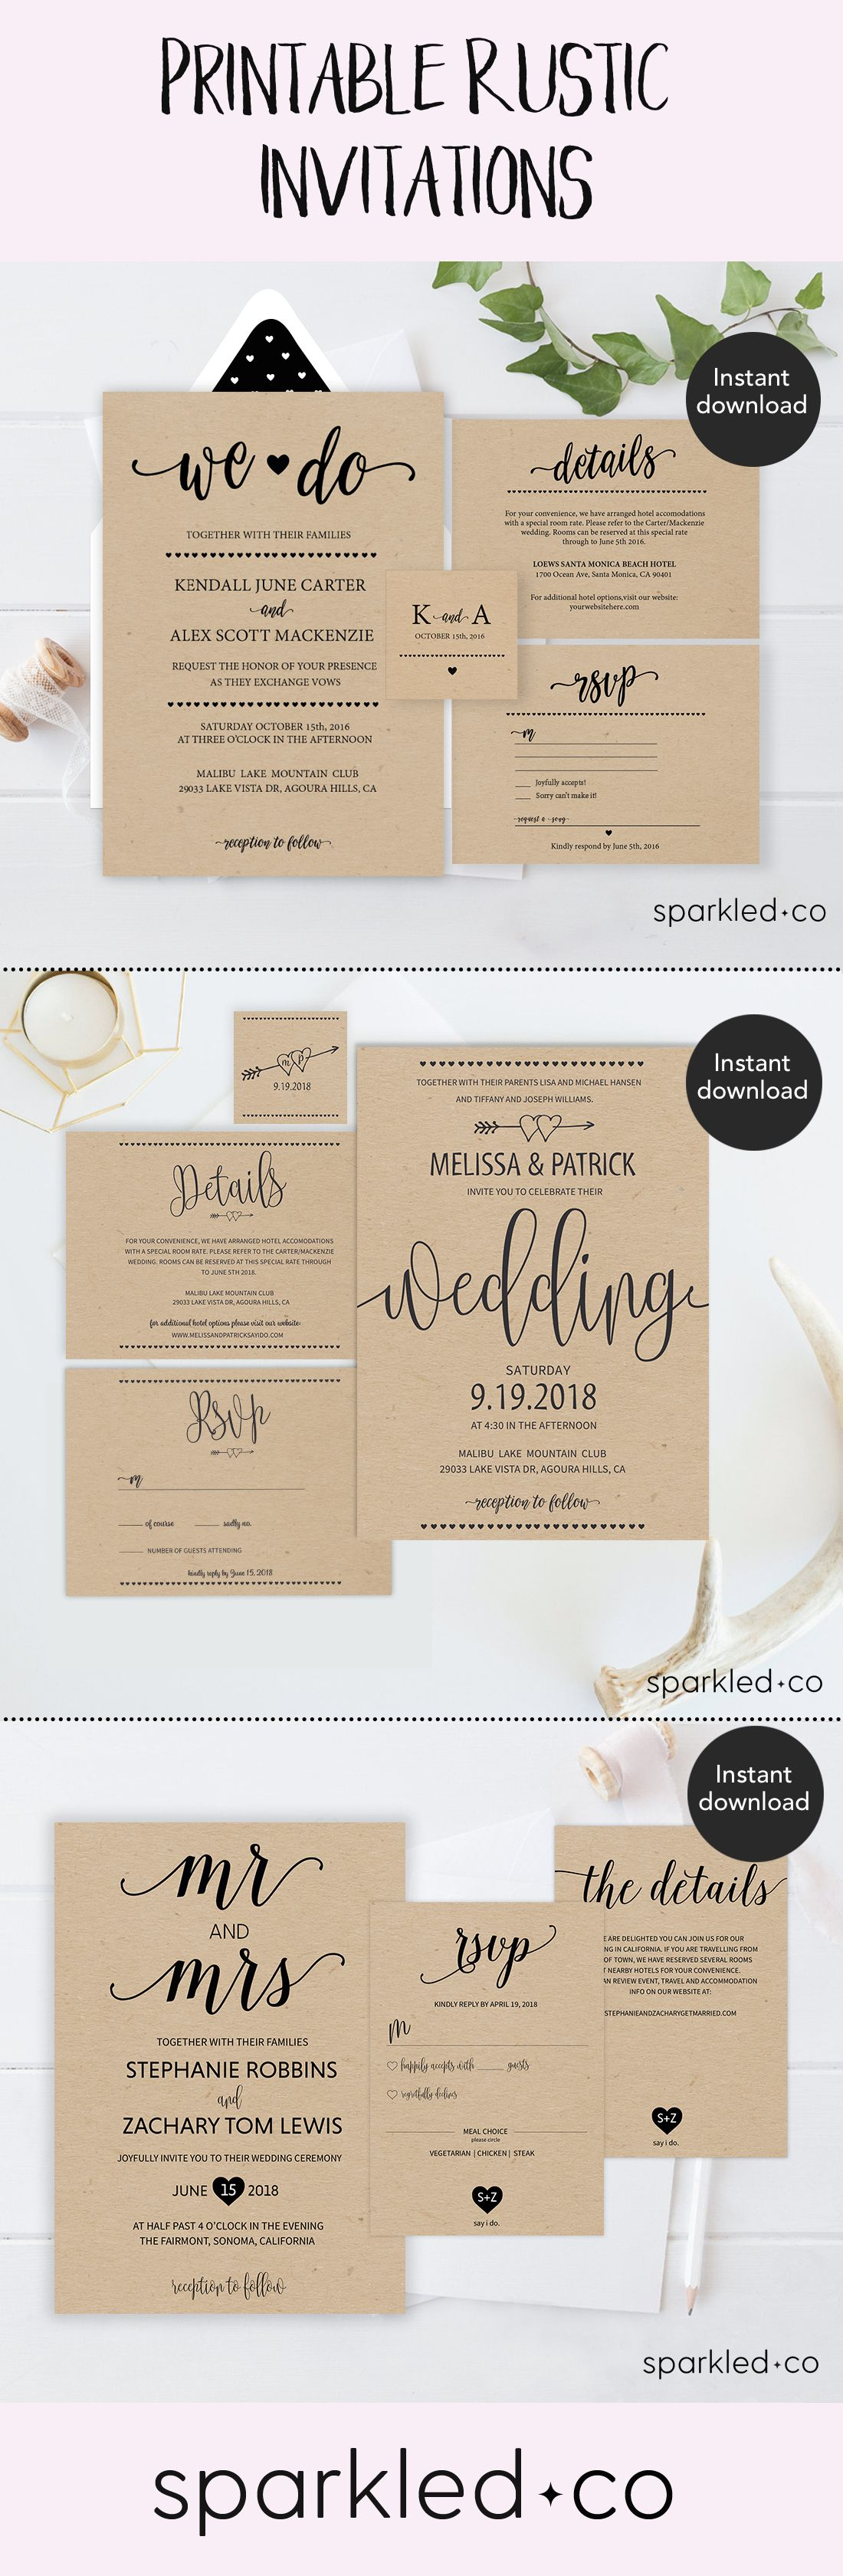 Affordable diy rustic wedding invitations wedding pinterest affordable diy rustic wedding invitations solutioingenieria Gallery